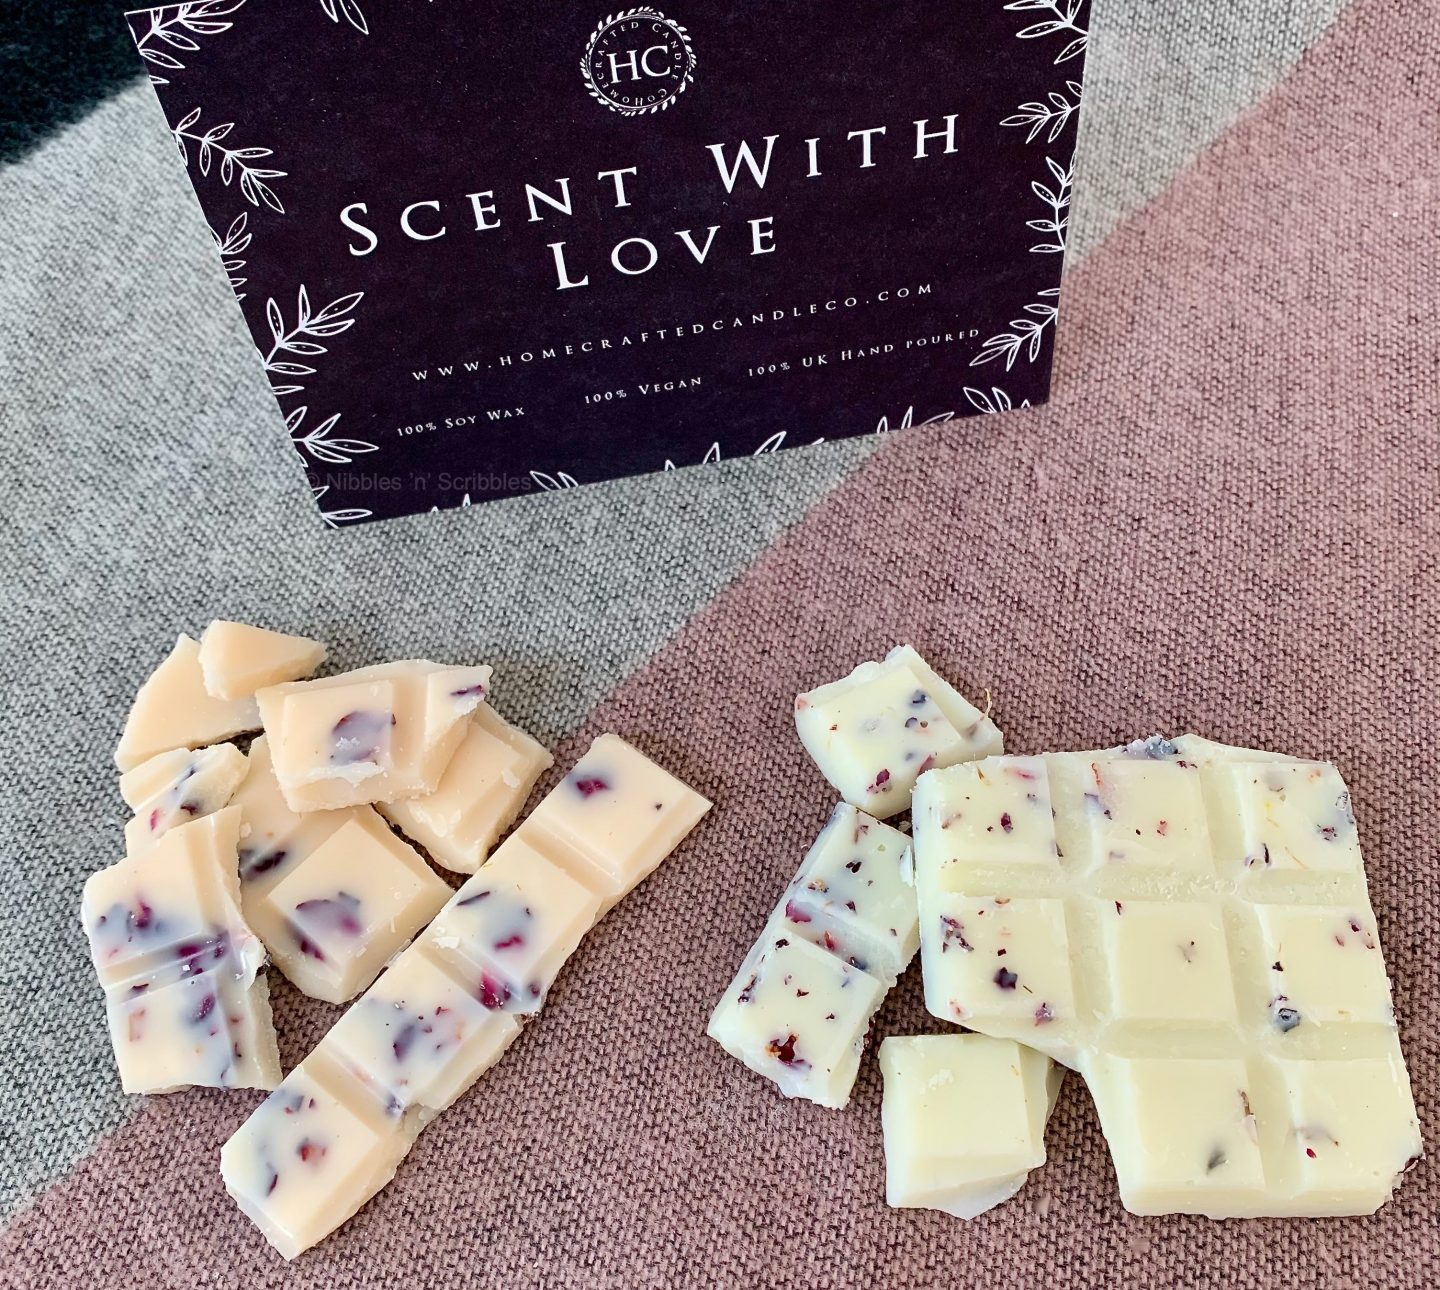 Home Crafted Candle Co Wax Melts